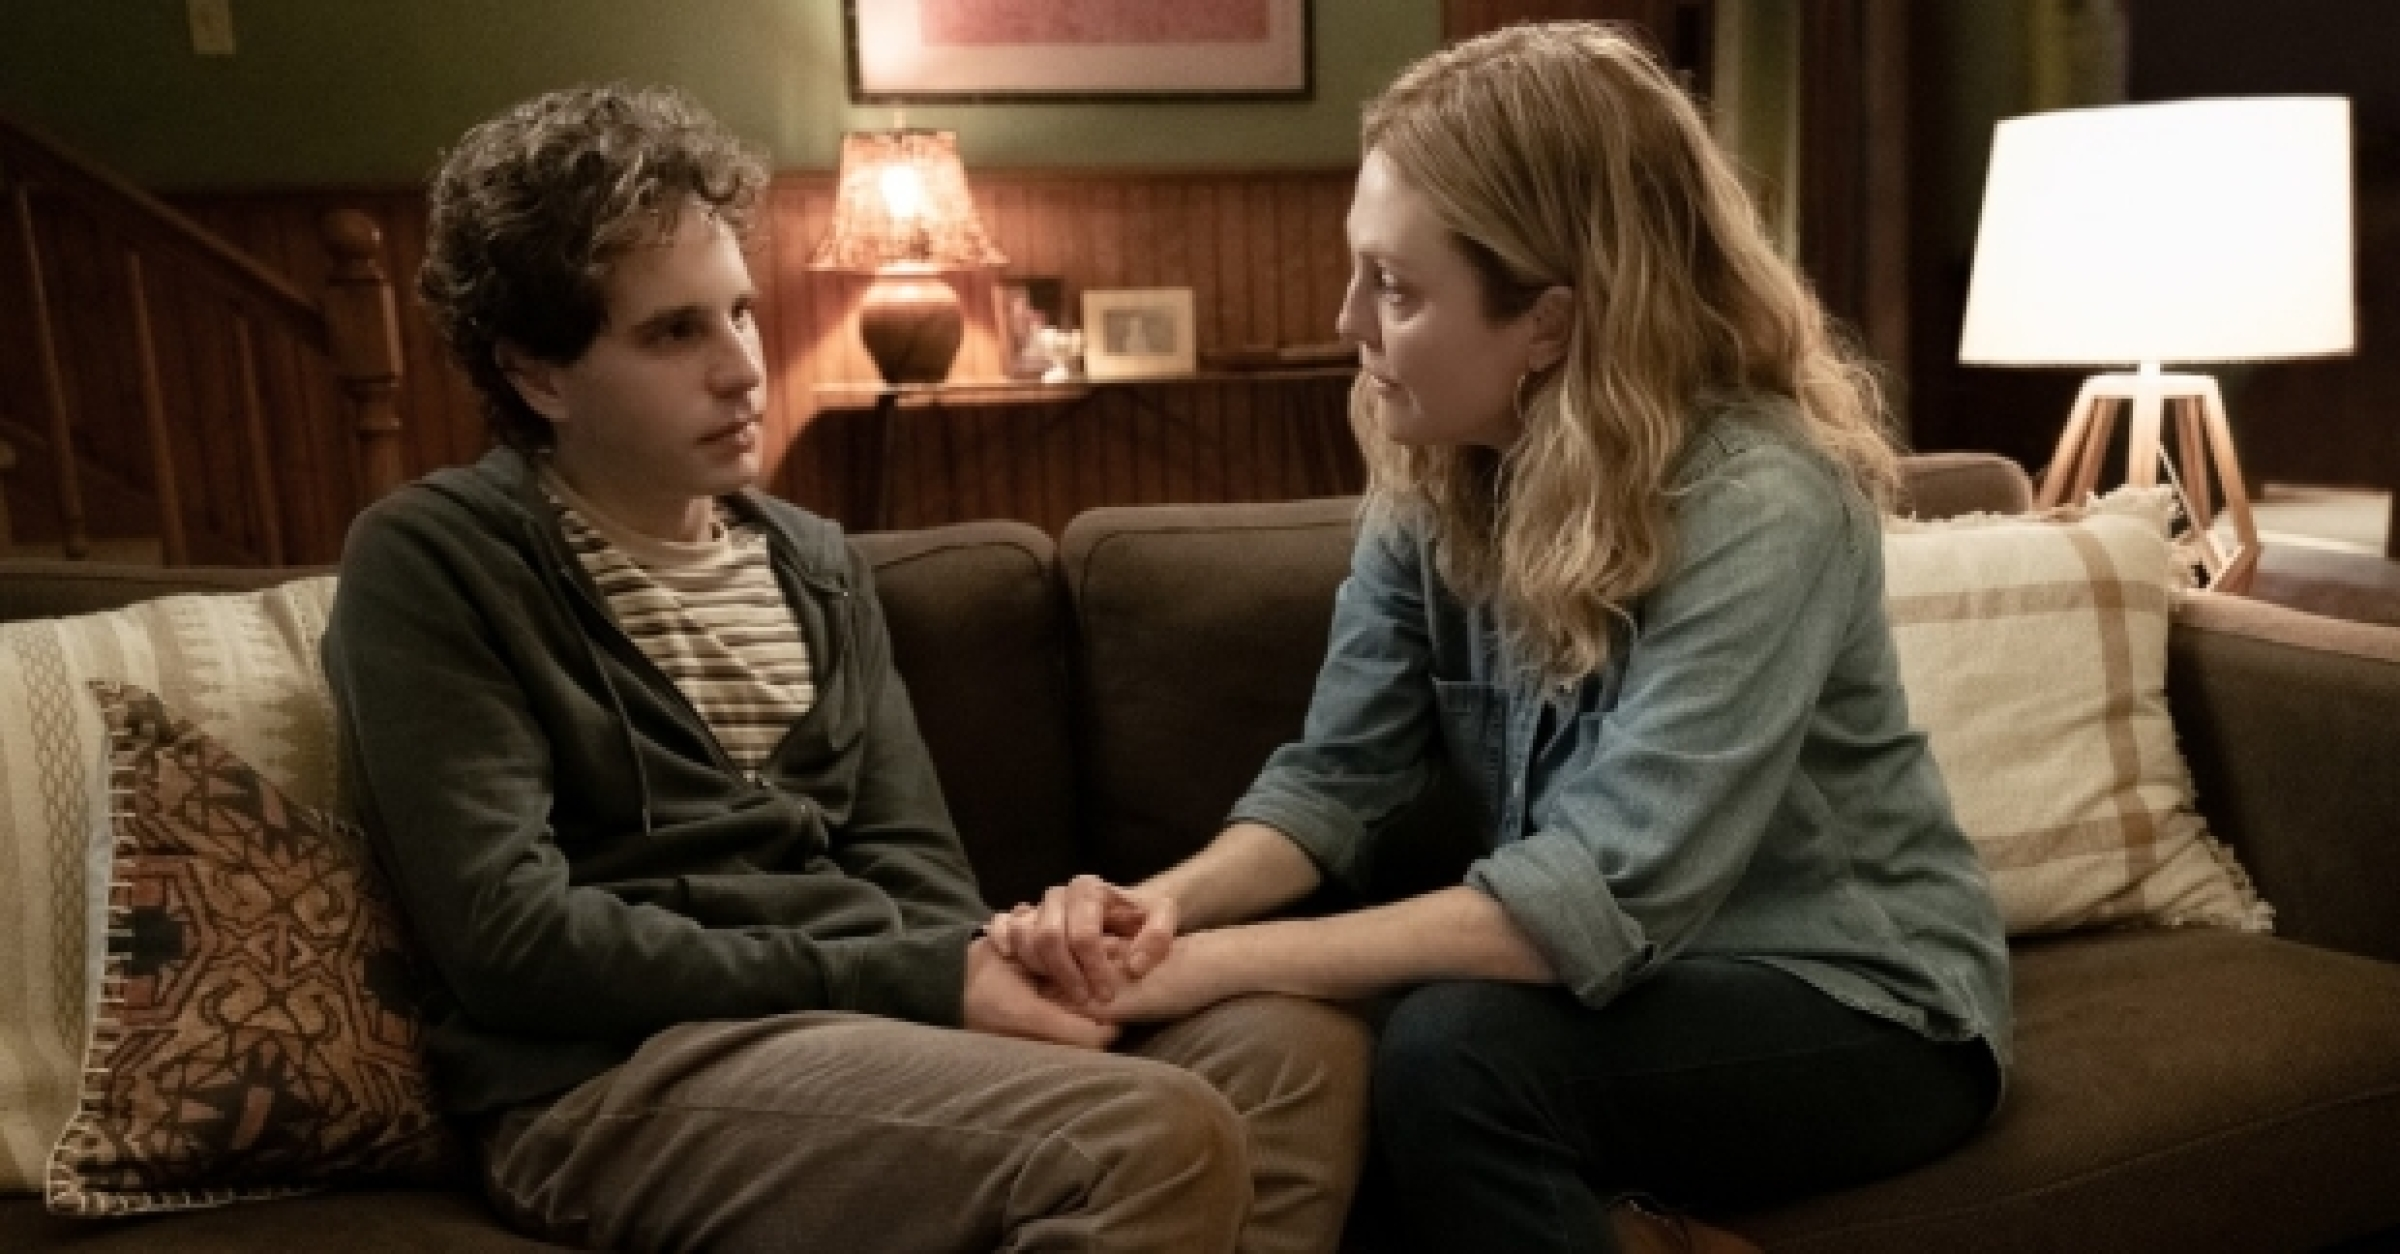 Universal Pictures have released the final trailer for the upcoming film adaptation of Tony award-winning musical Dear Evan Hansen.